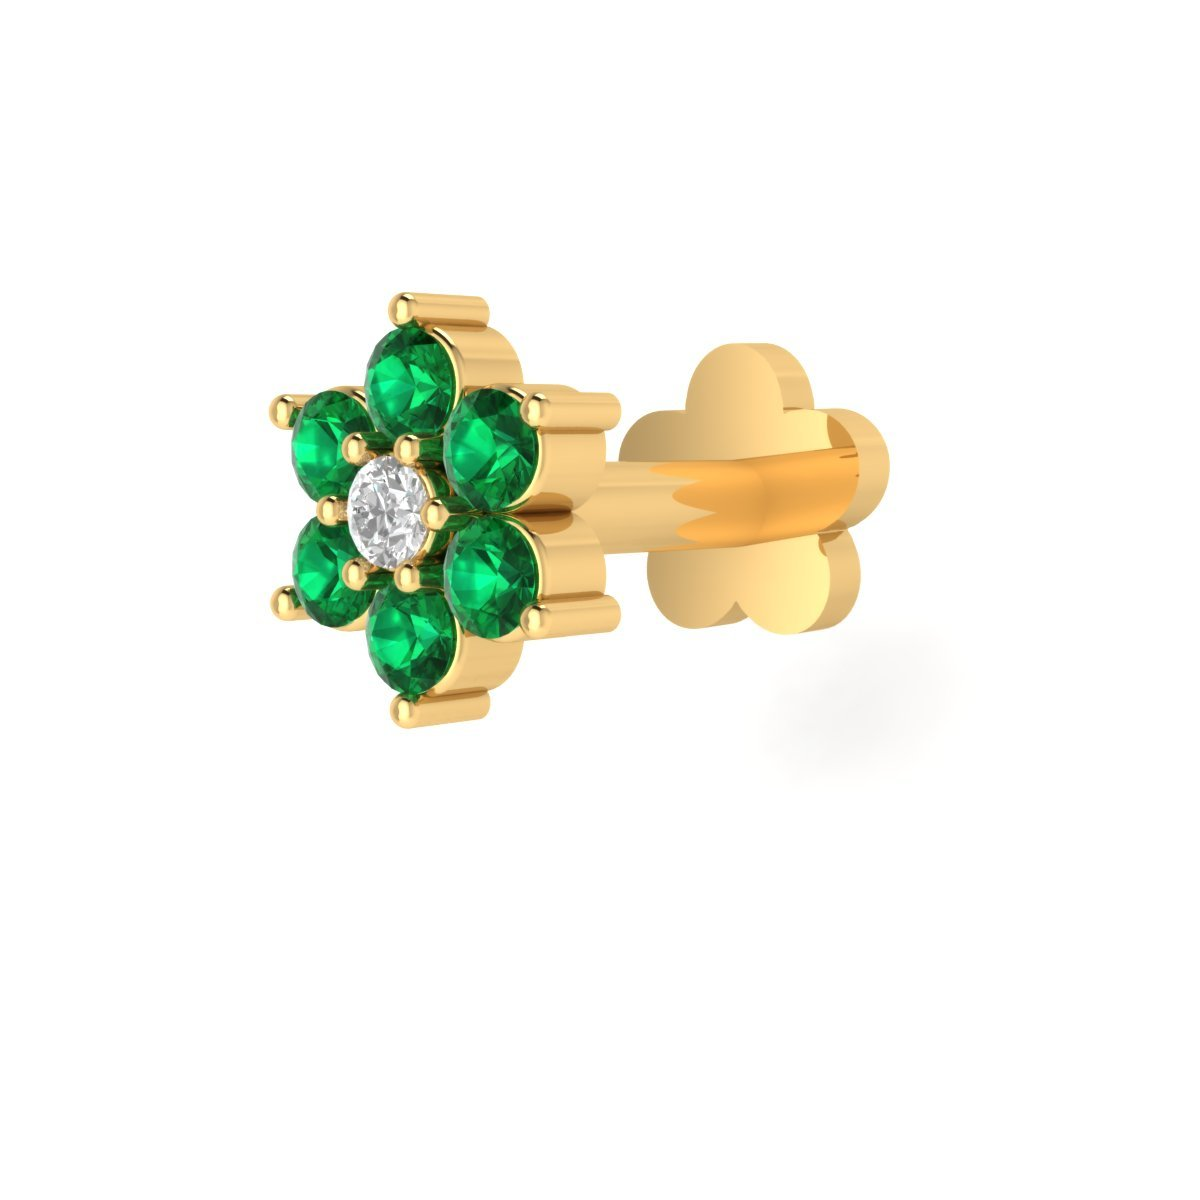 Animas Jewels DGLA Certified 14k Yellow Gold Flower Stud Nose Pin for Women 0.02 Cttw Natural Diamond (G-H Color. SI1 Clarity) and Green Emerald Round 3-Prong Setting. Available Length 8 mm by Animas Jewels